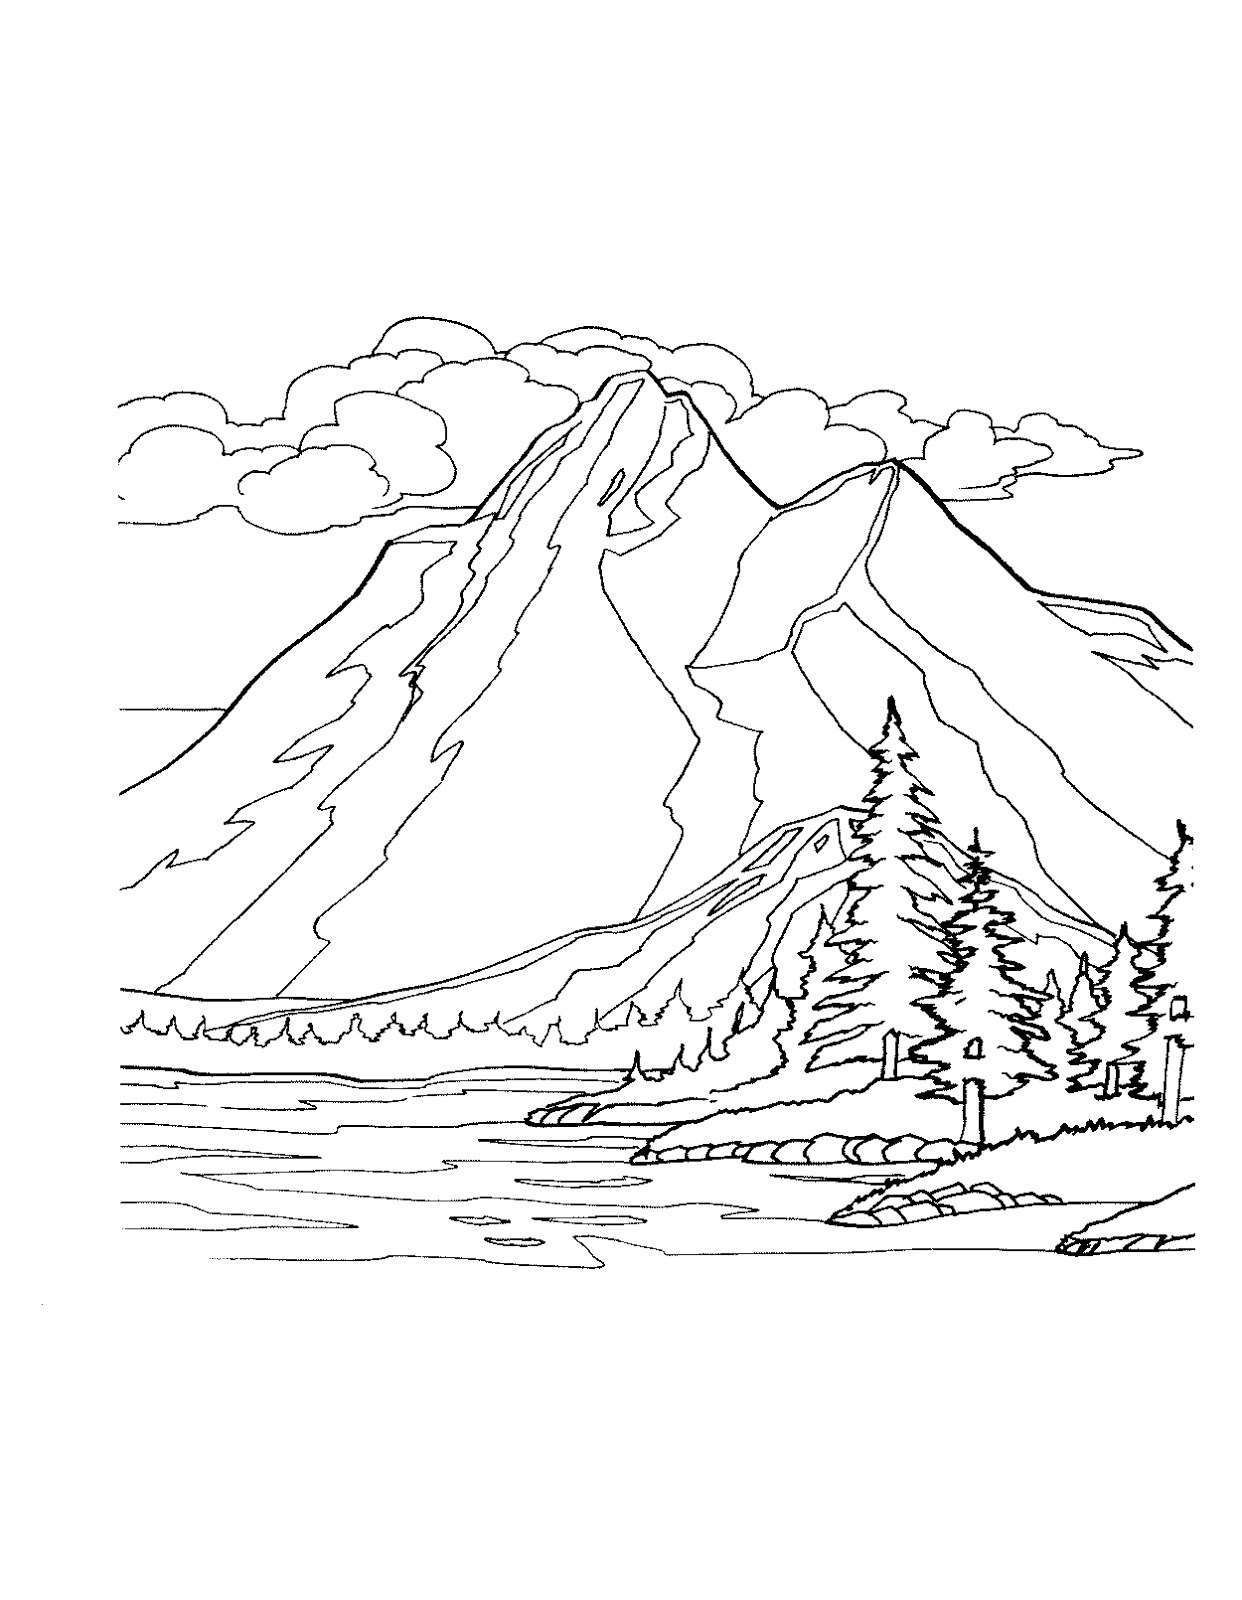 Simple Mountain Range Drawing Sketch Coloring Page